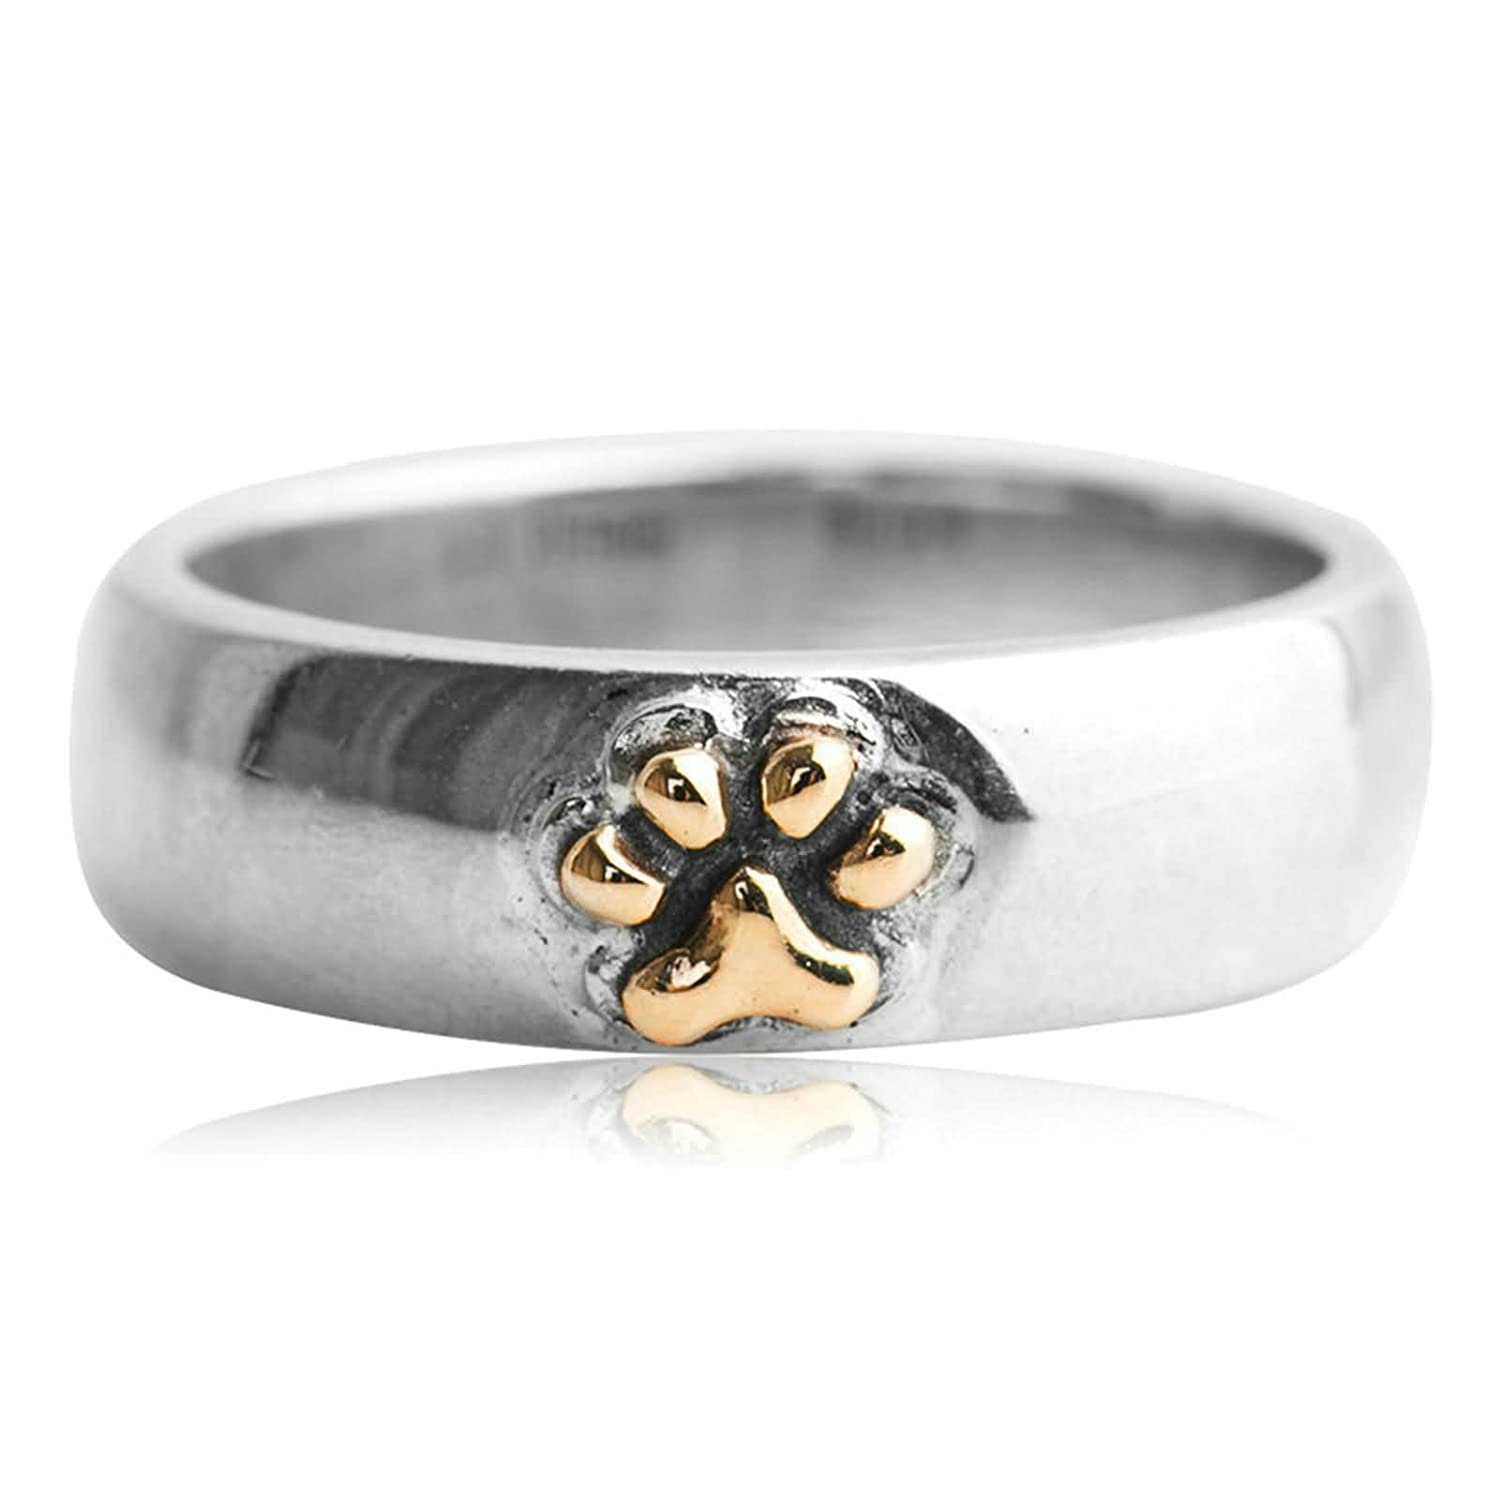 Bishilin Mens Rings Silver Plated Round Cute Animal Footprint Friendship Rings Silver Size 8.5